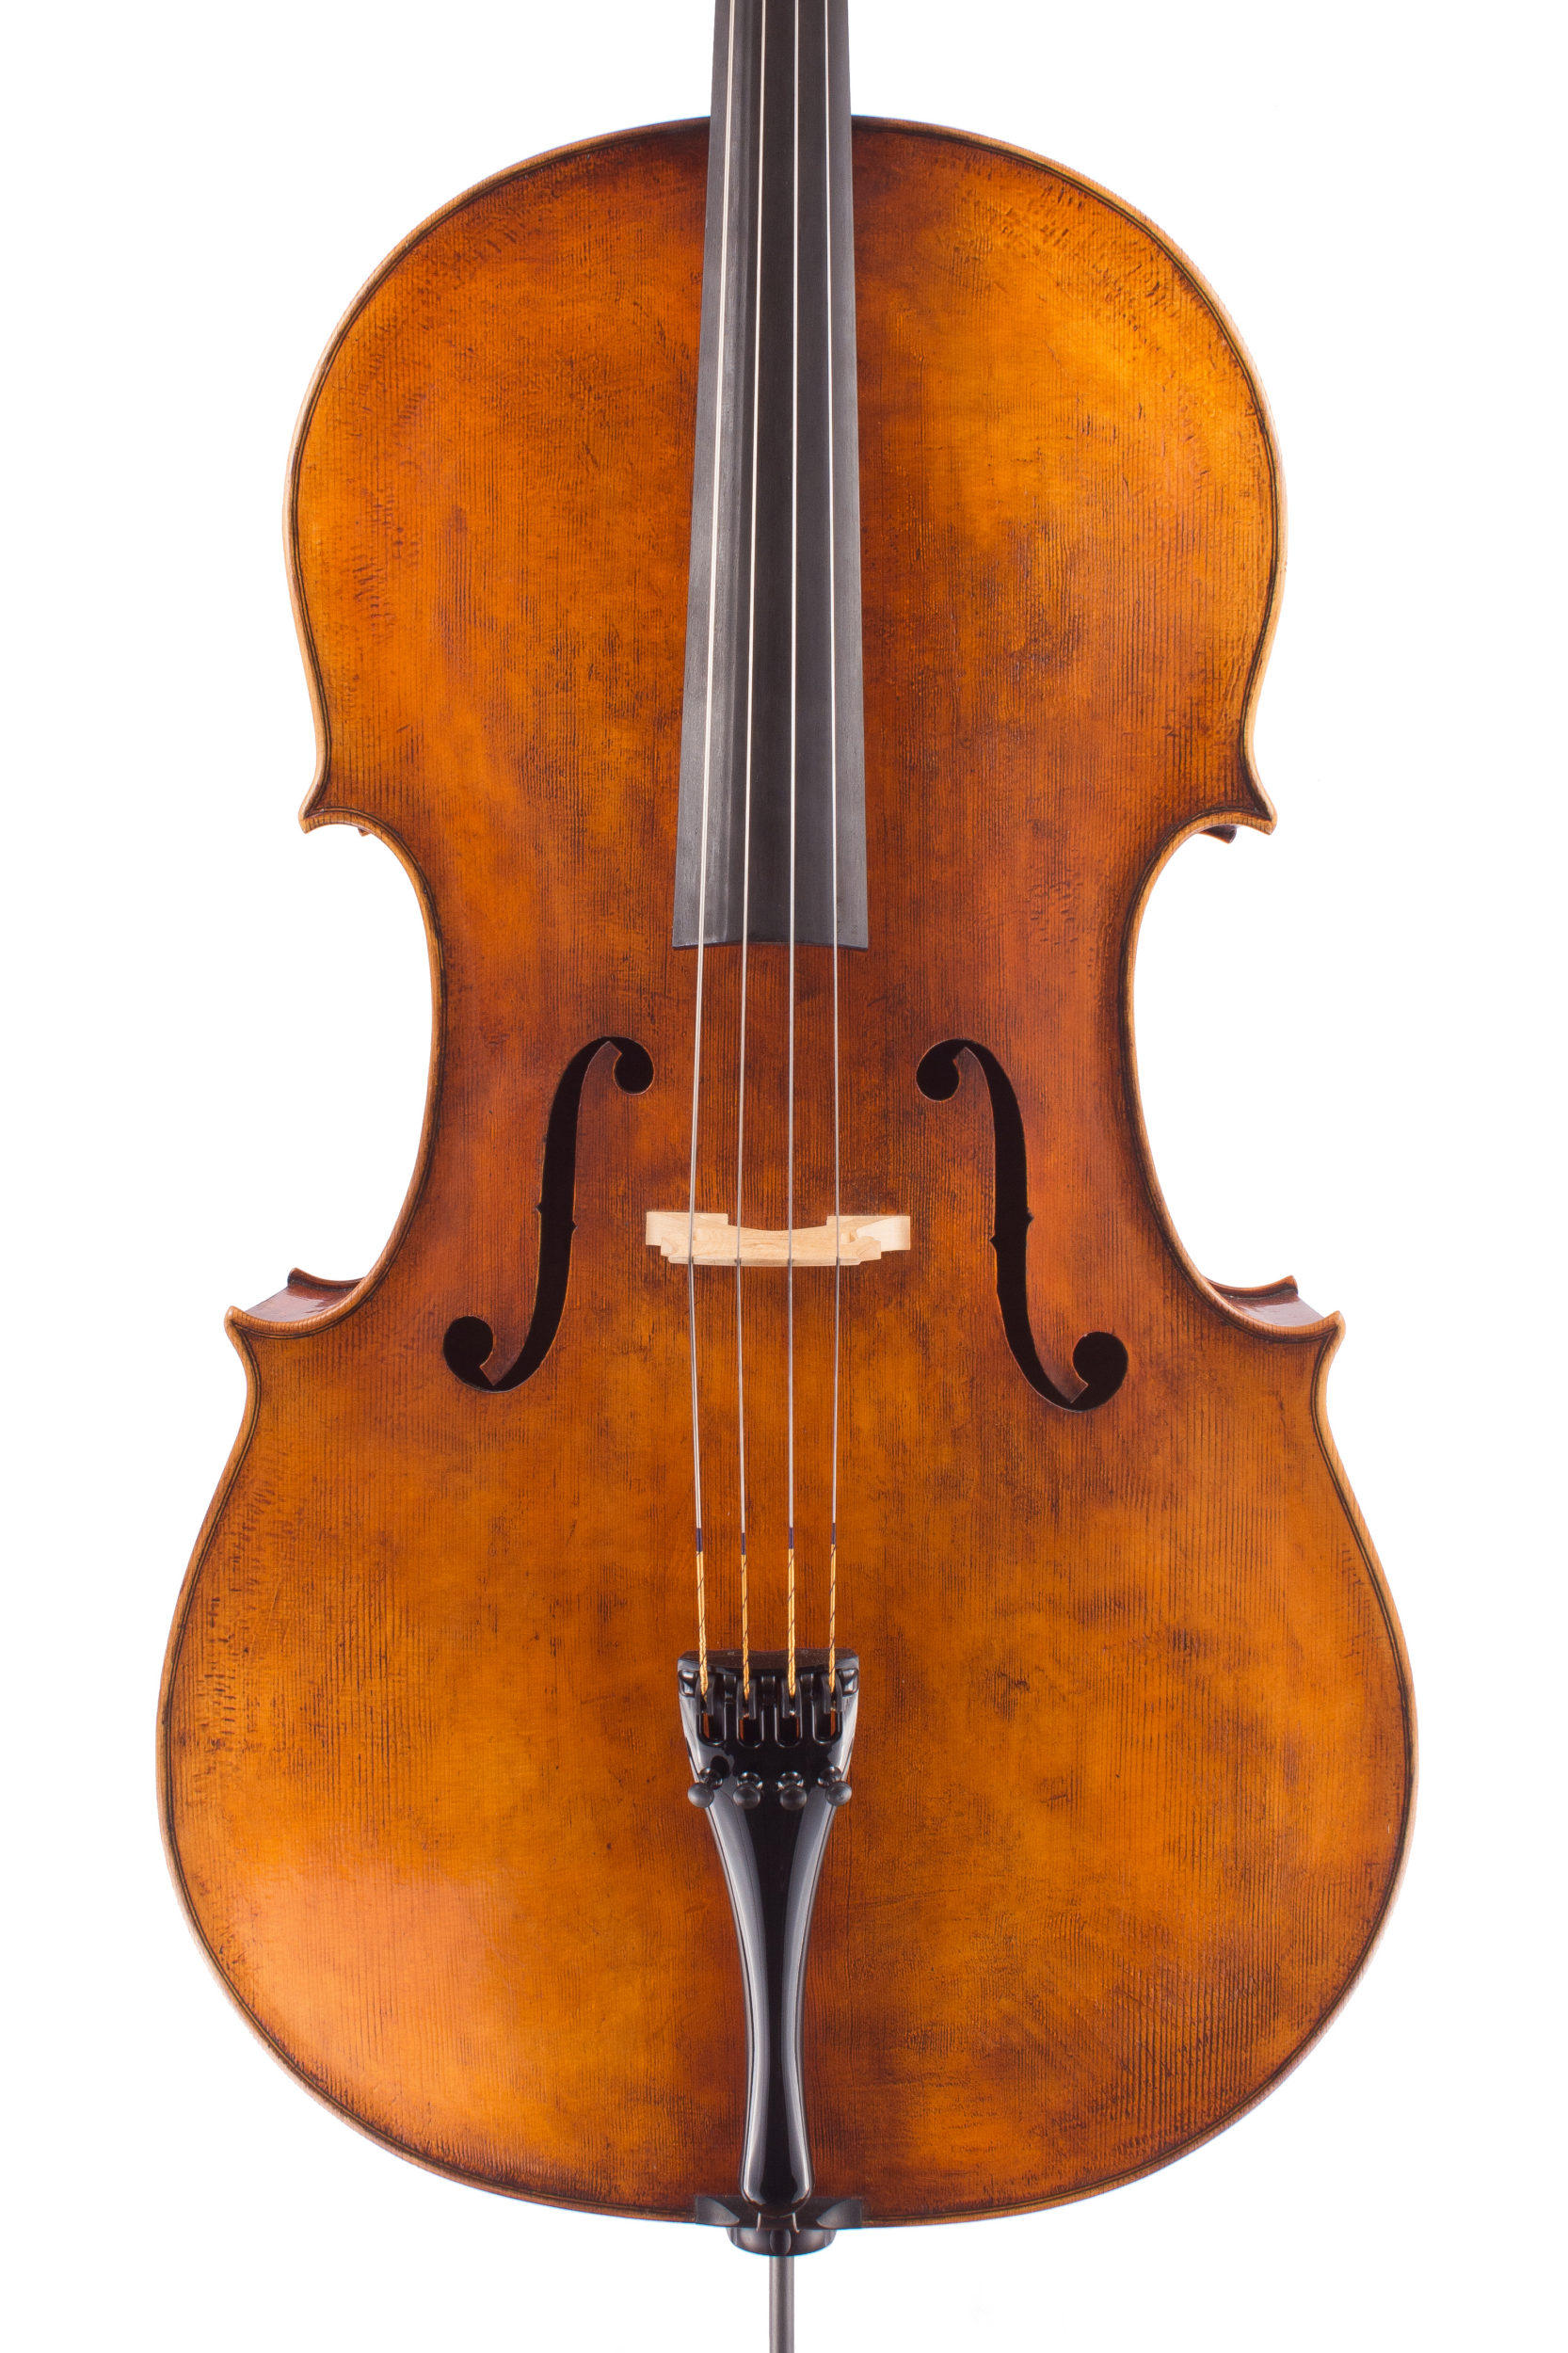 Cello by Luiz Amorim, Goffriller model 2016